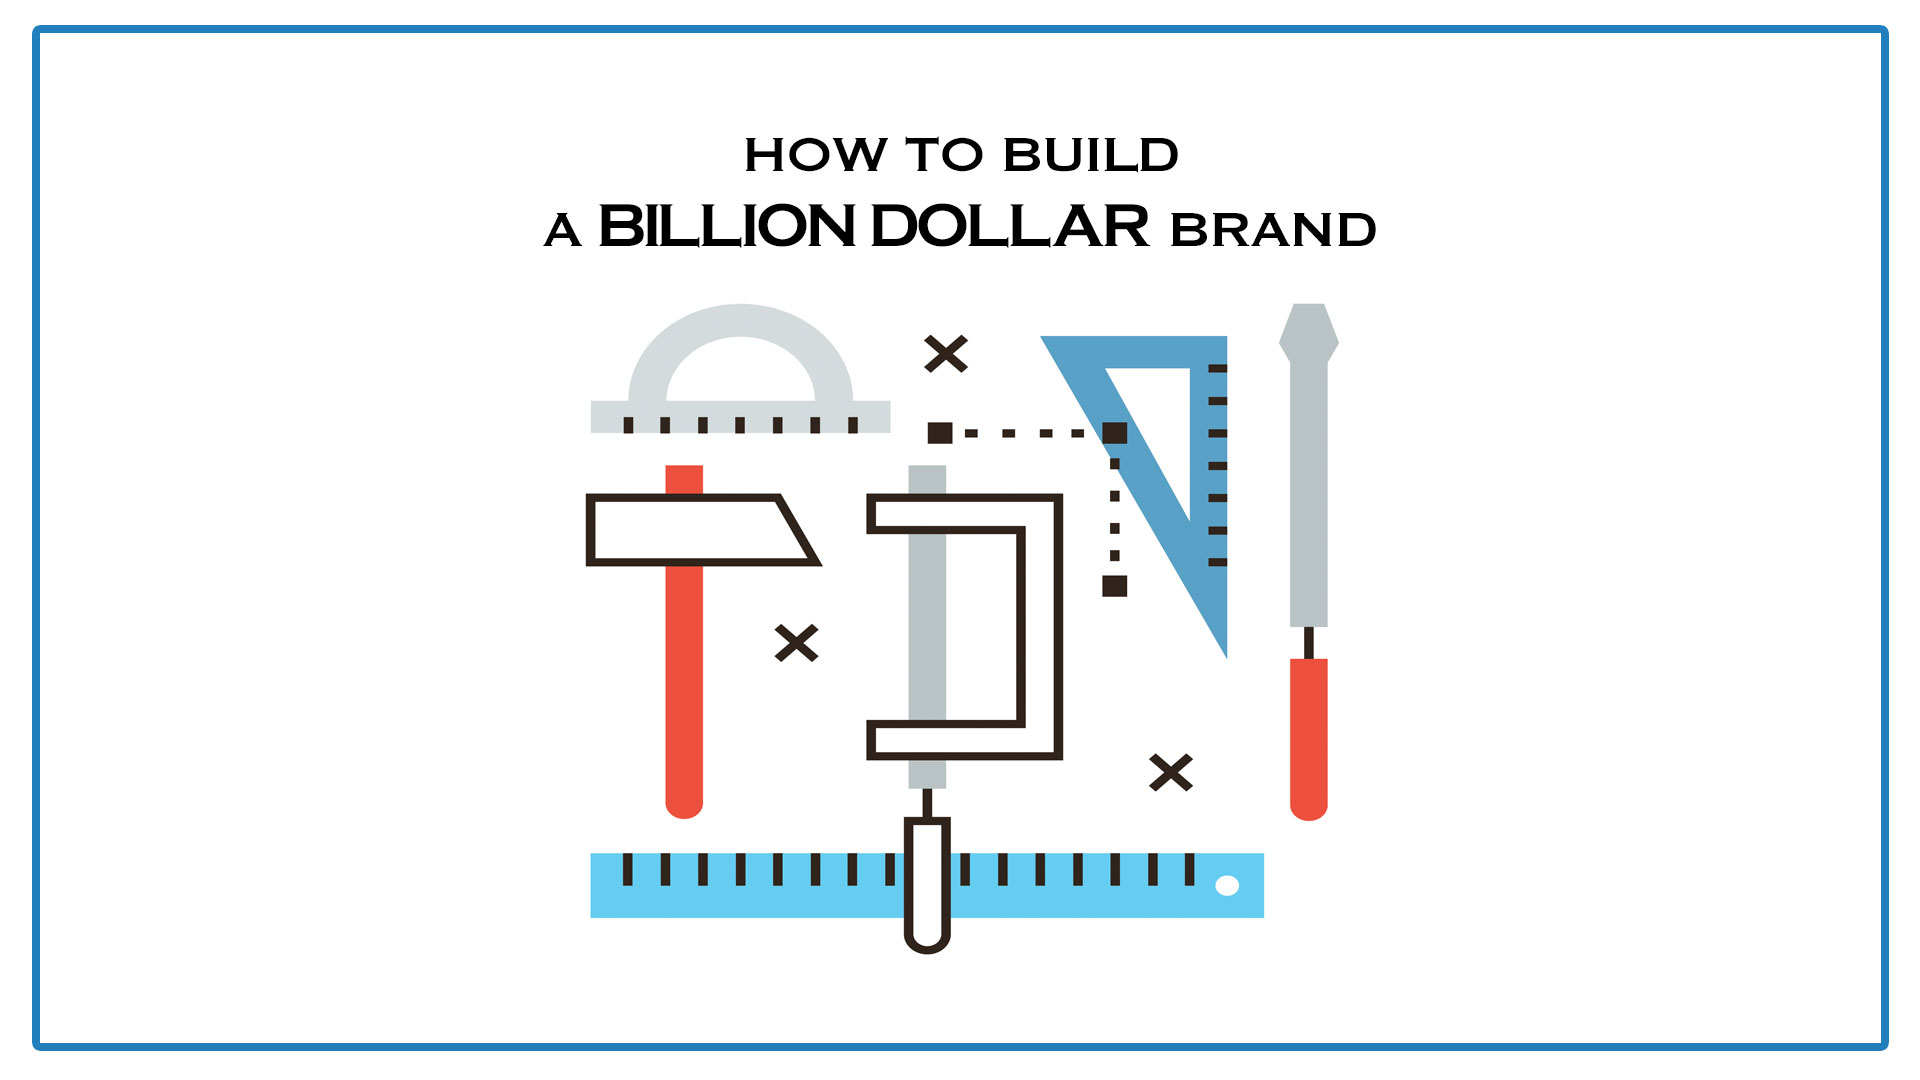 How To Build A Billion Dollar Brand